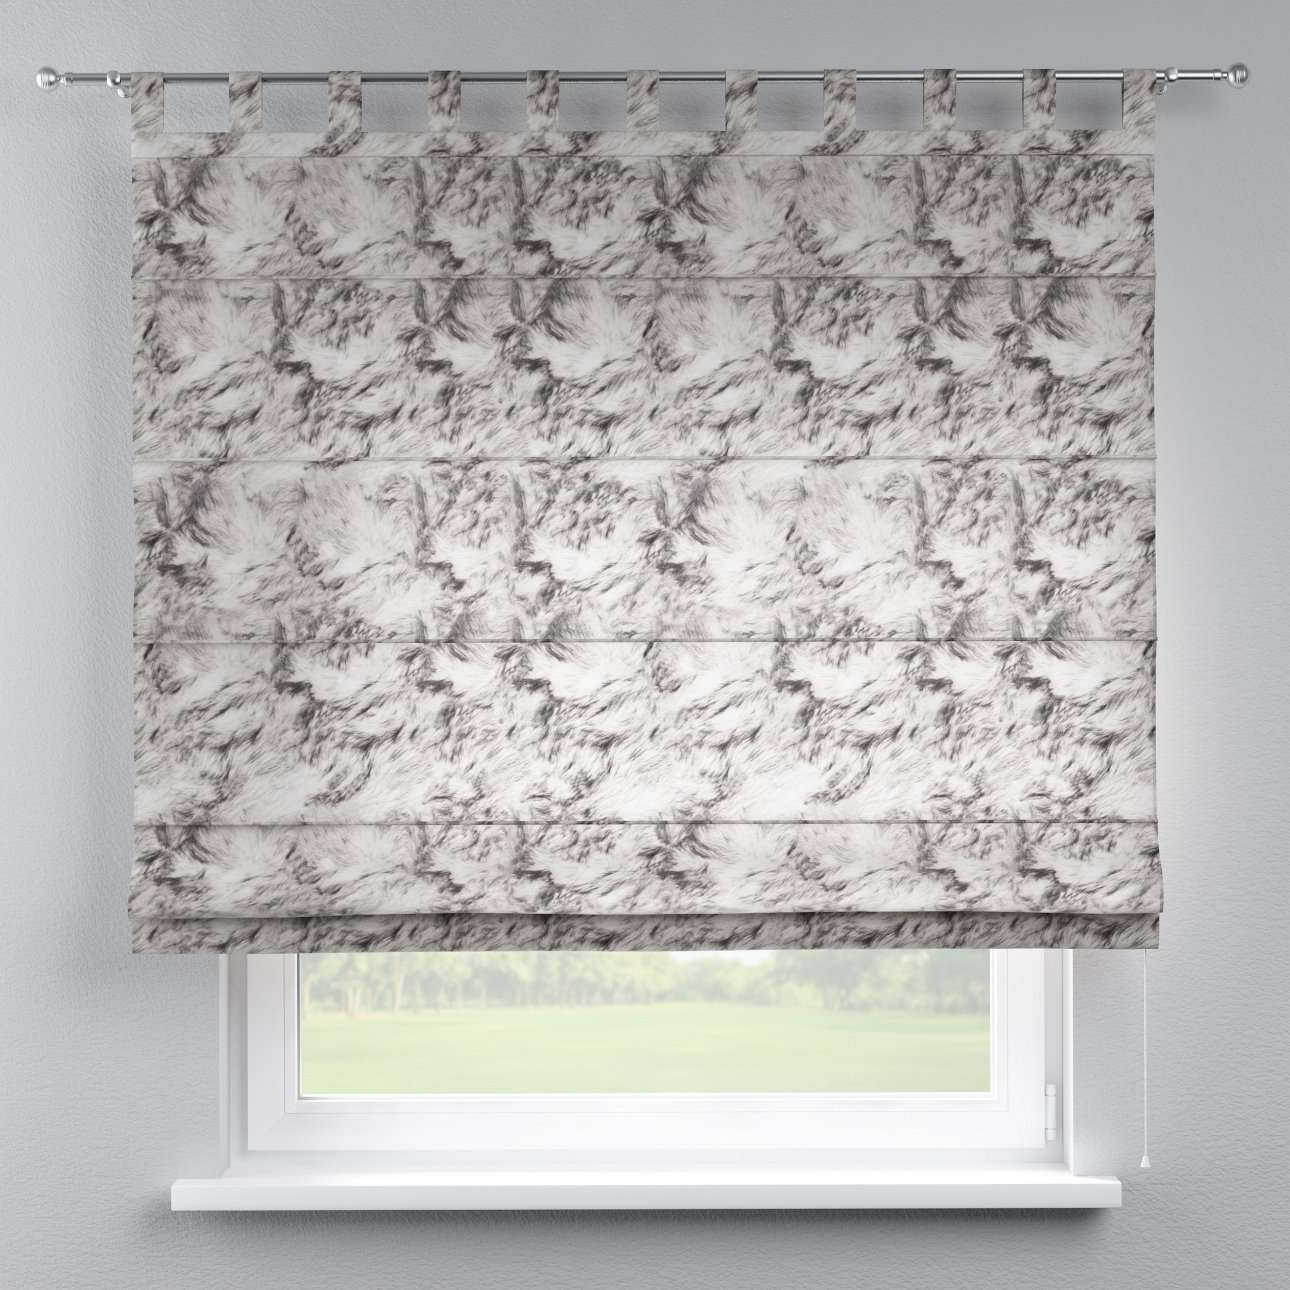 Verona tab top roman blind in collection Freestyle, fabric: 140-82